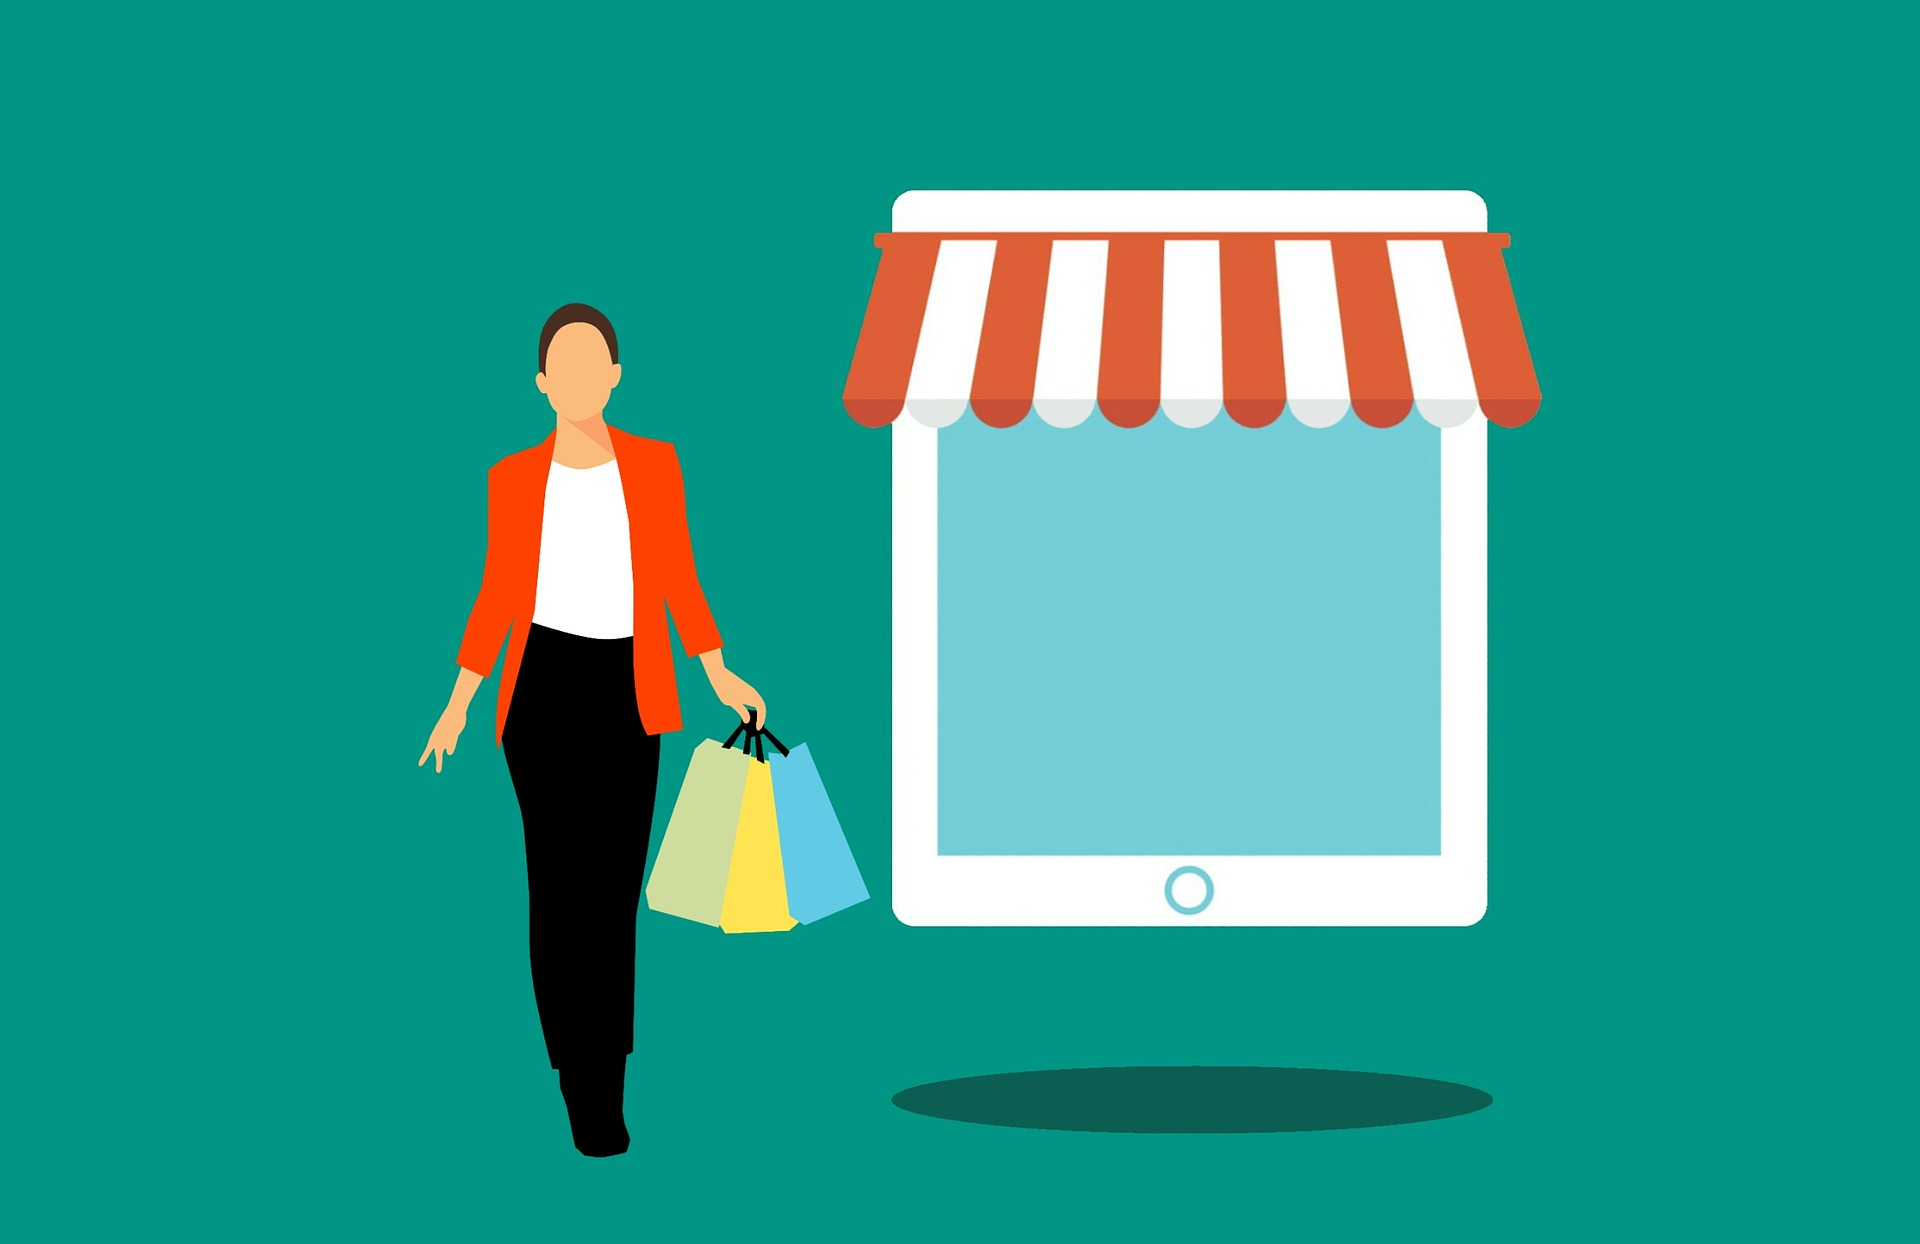 A vector image of woman holding grocery bags.